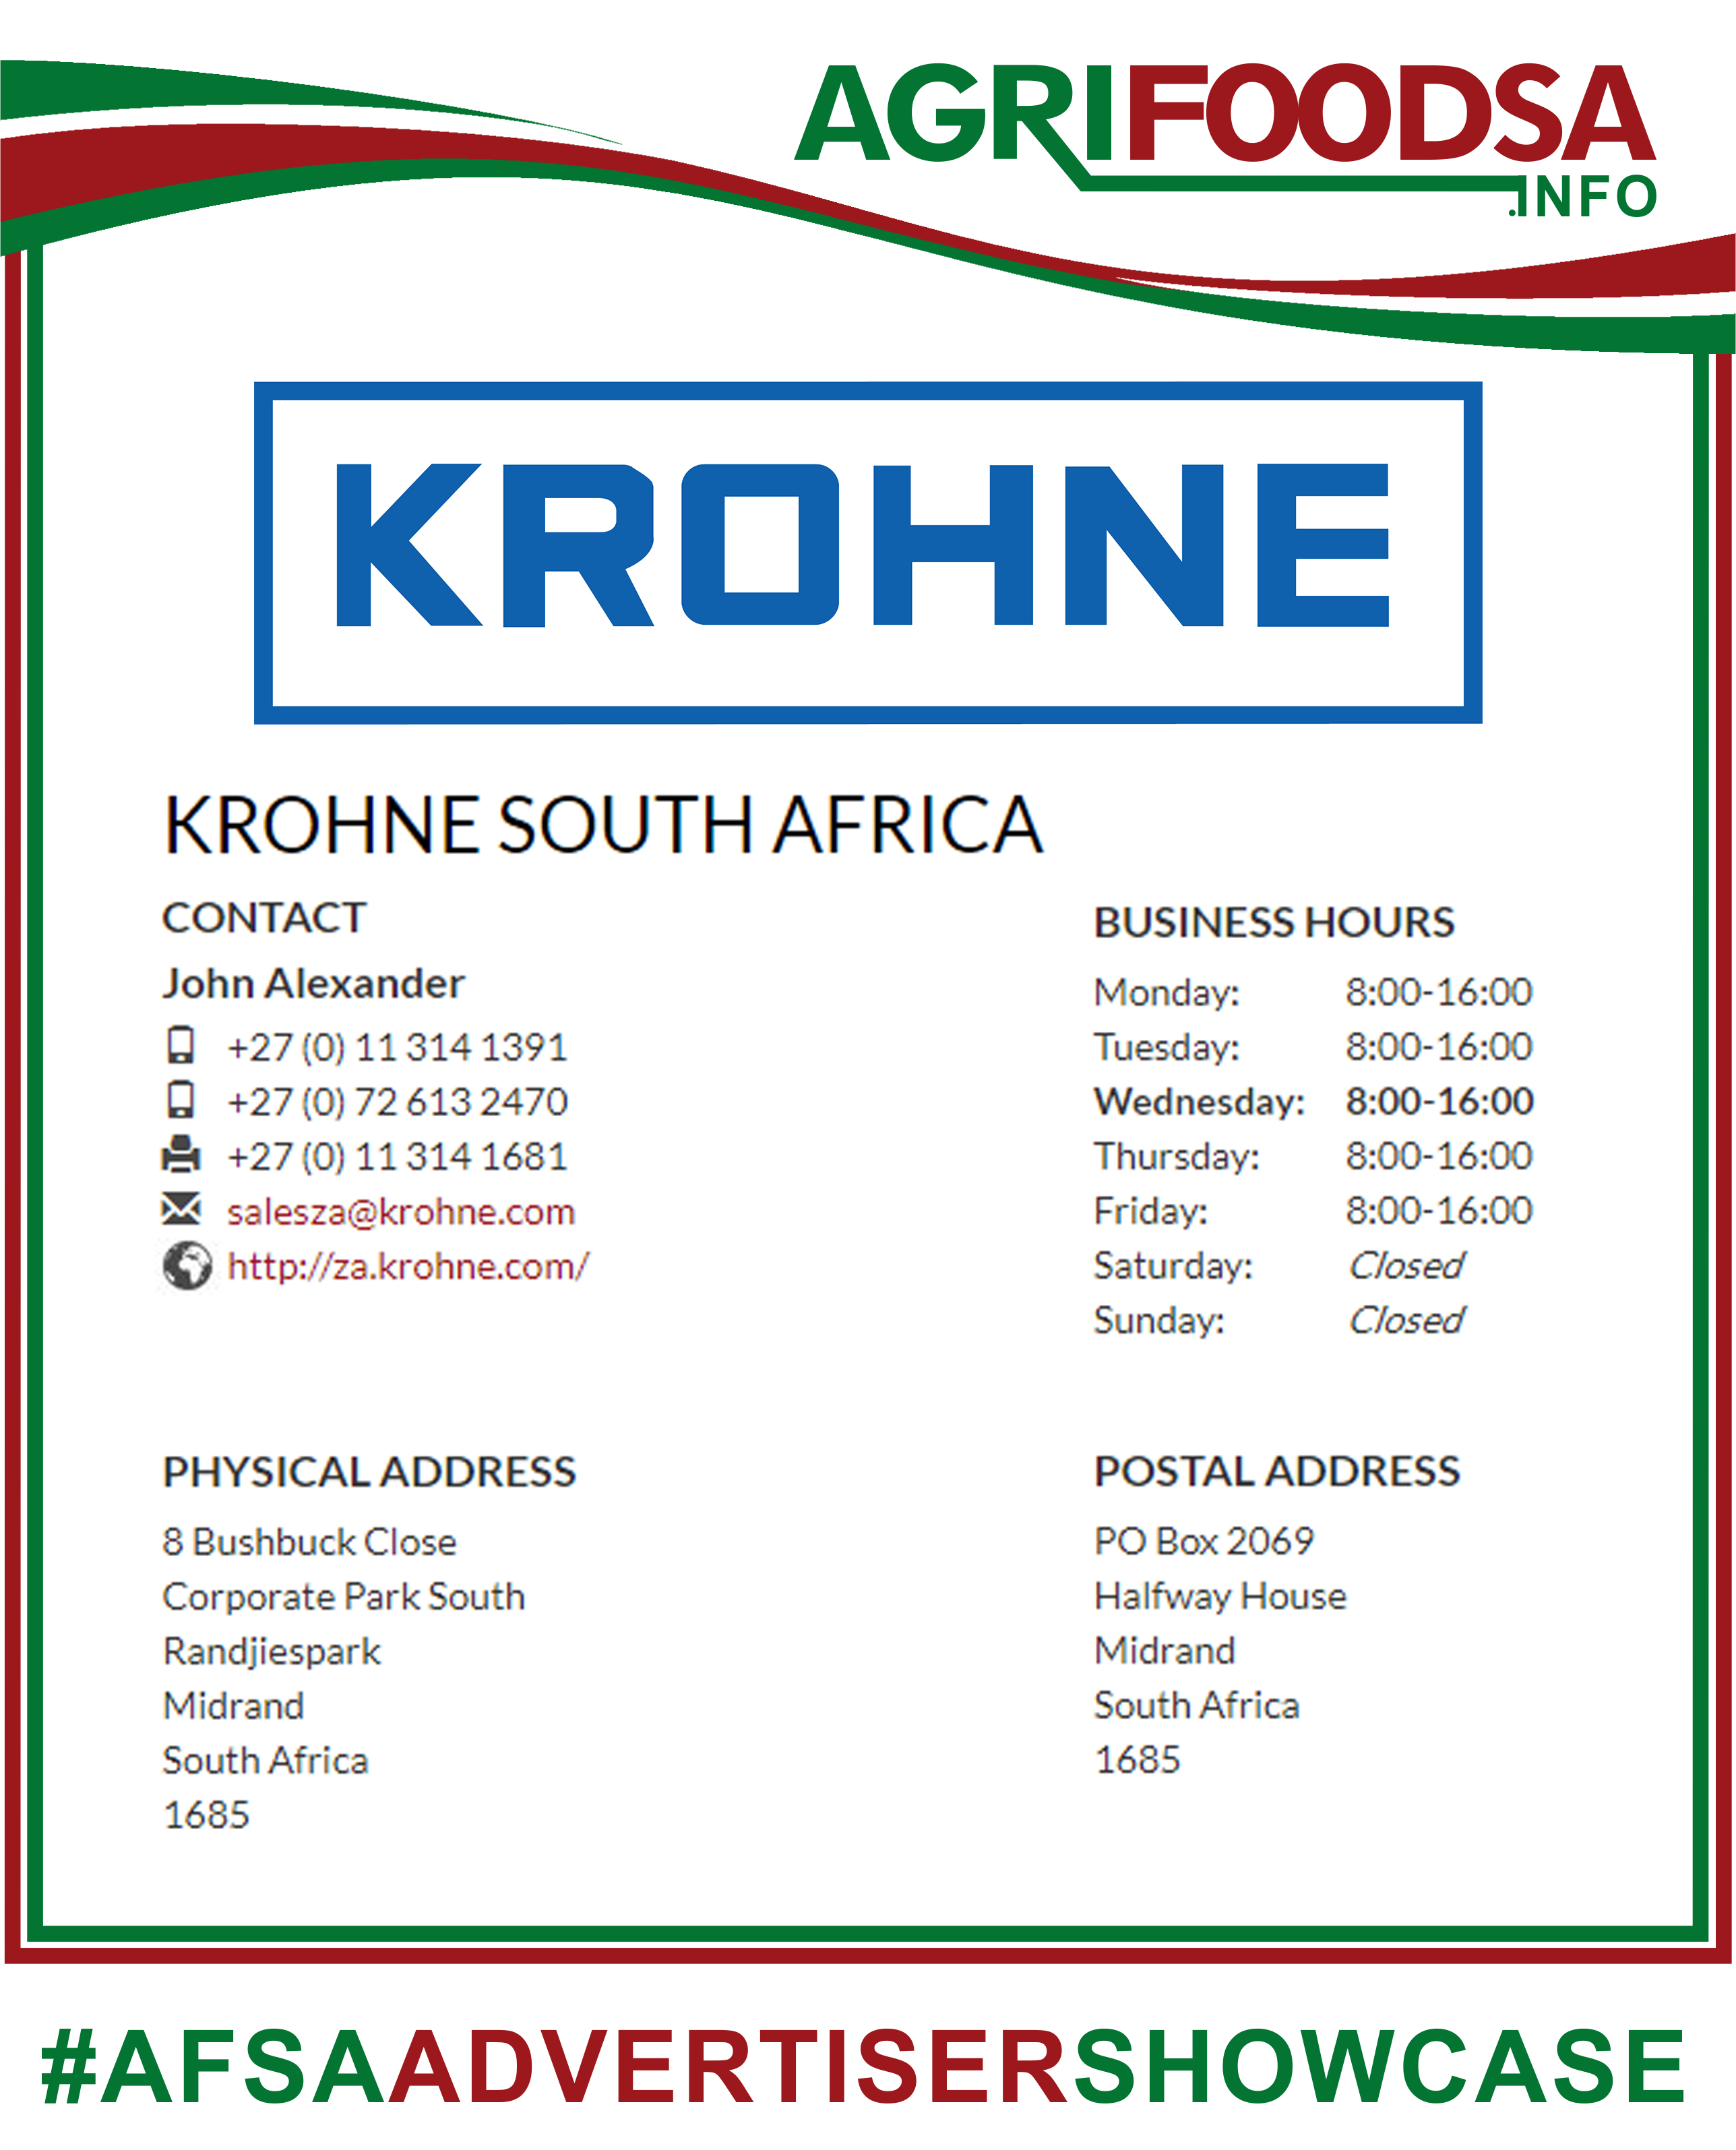 Pin by AGRIFOODSA INFO on Agricultural Products | South Africa